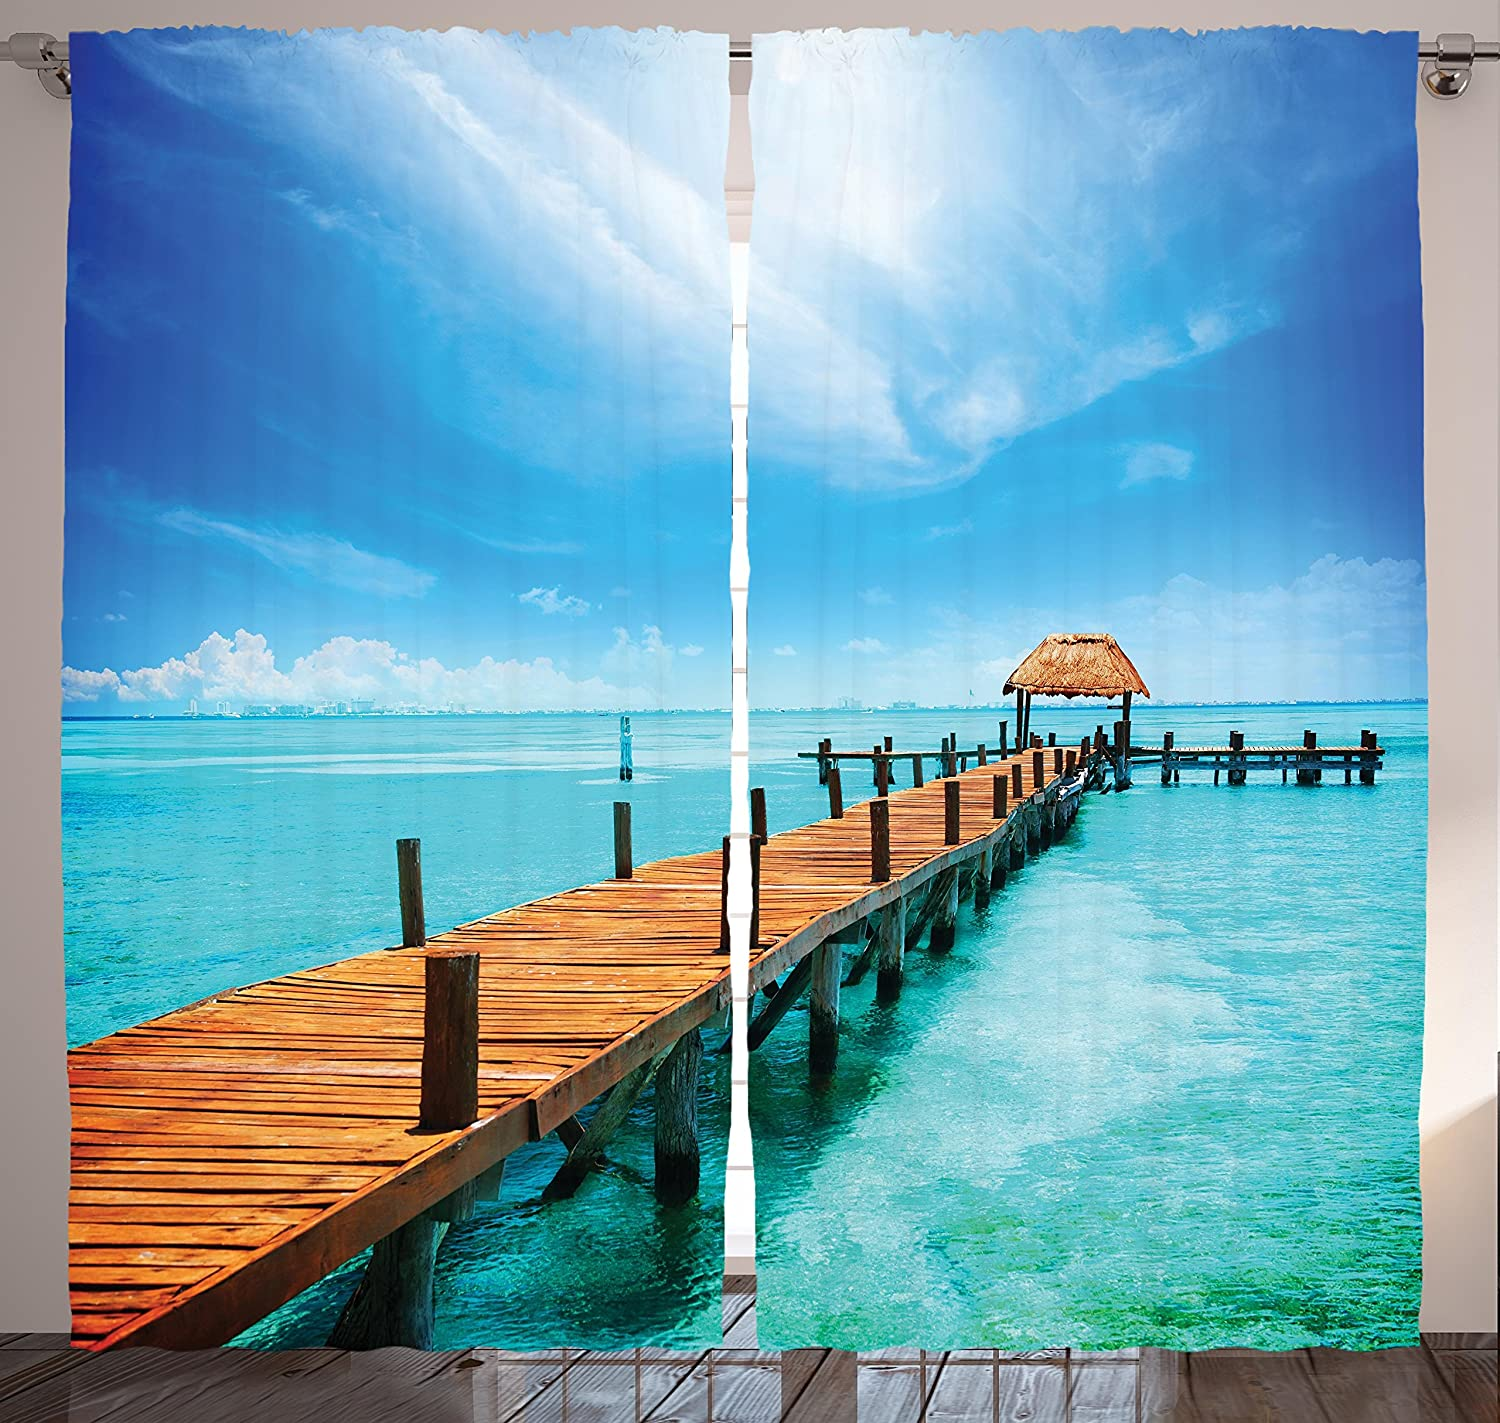 Ambesonne Tropical Curtains, Exotic Hawaiian Wooden Pier Design Warm Ocean Pastoral Summer Vacation Theme, Living Room Bedroom Window Drapes 2 Panel Set, 108